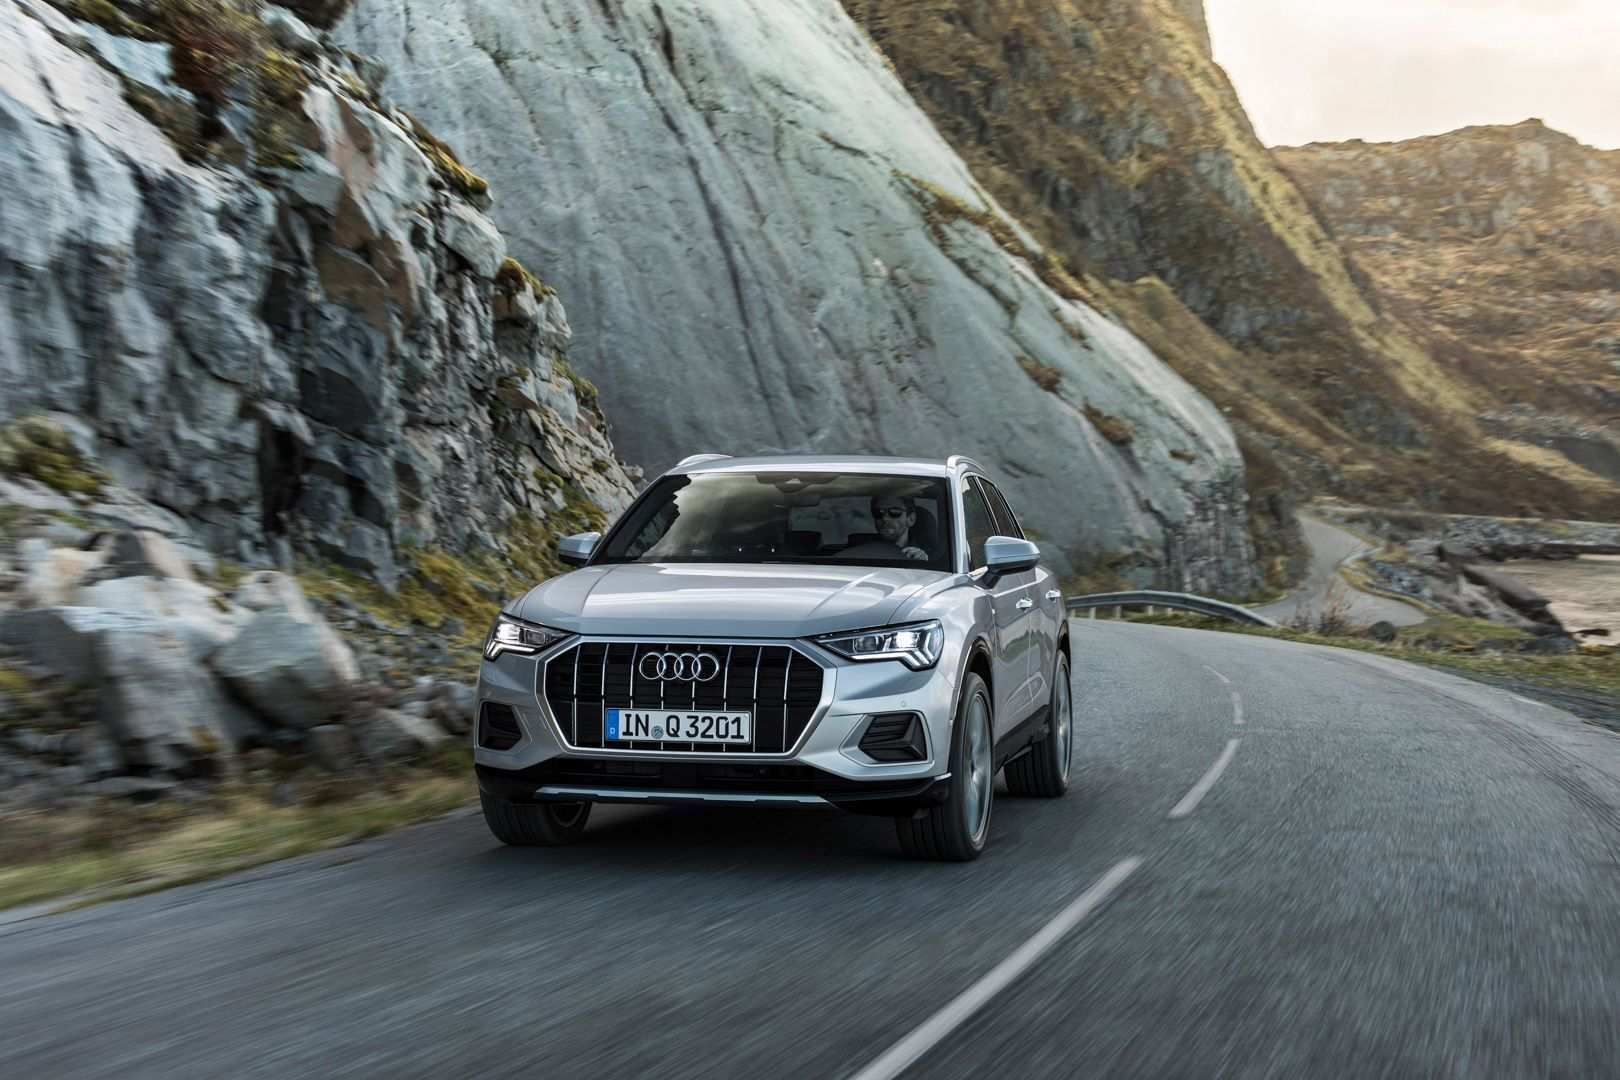 80 New New Release Date For 2019 Audi Q3 New Review Specs and Review by New Release Date For 2019 Audi Q3 New Review